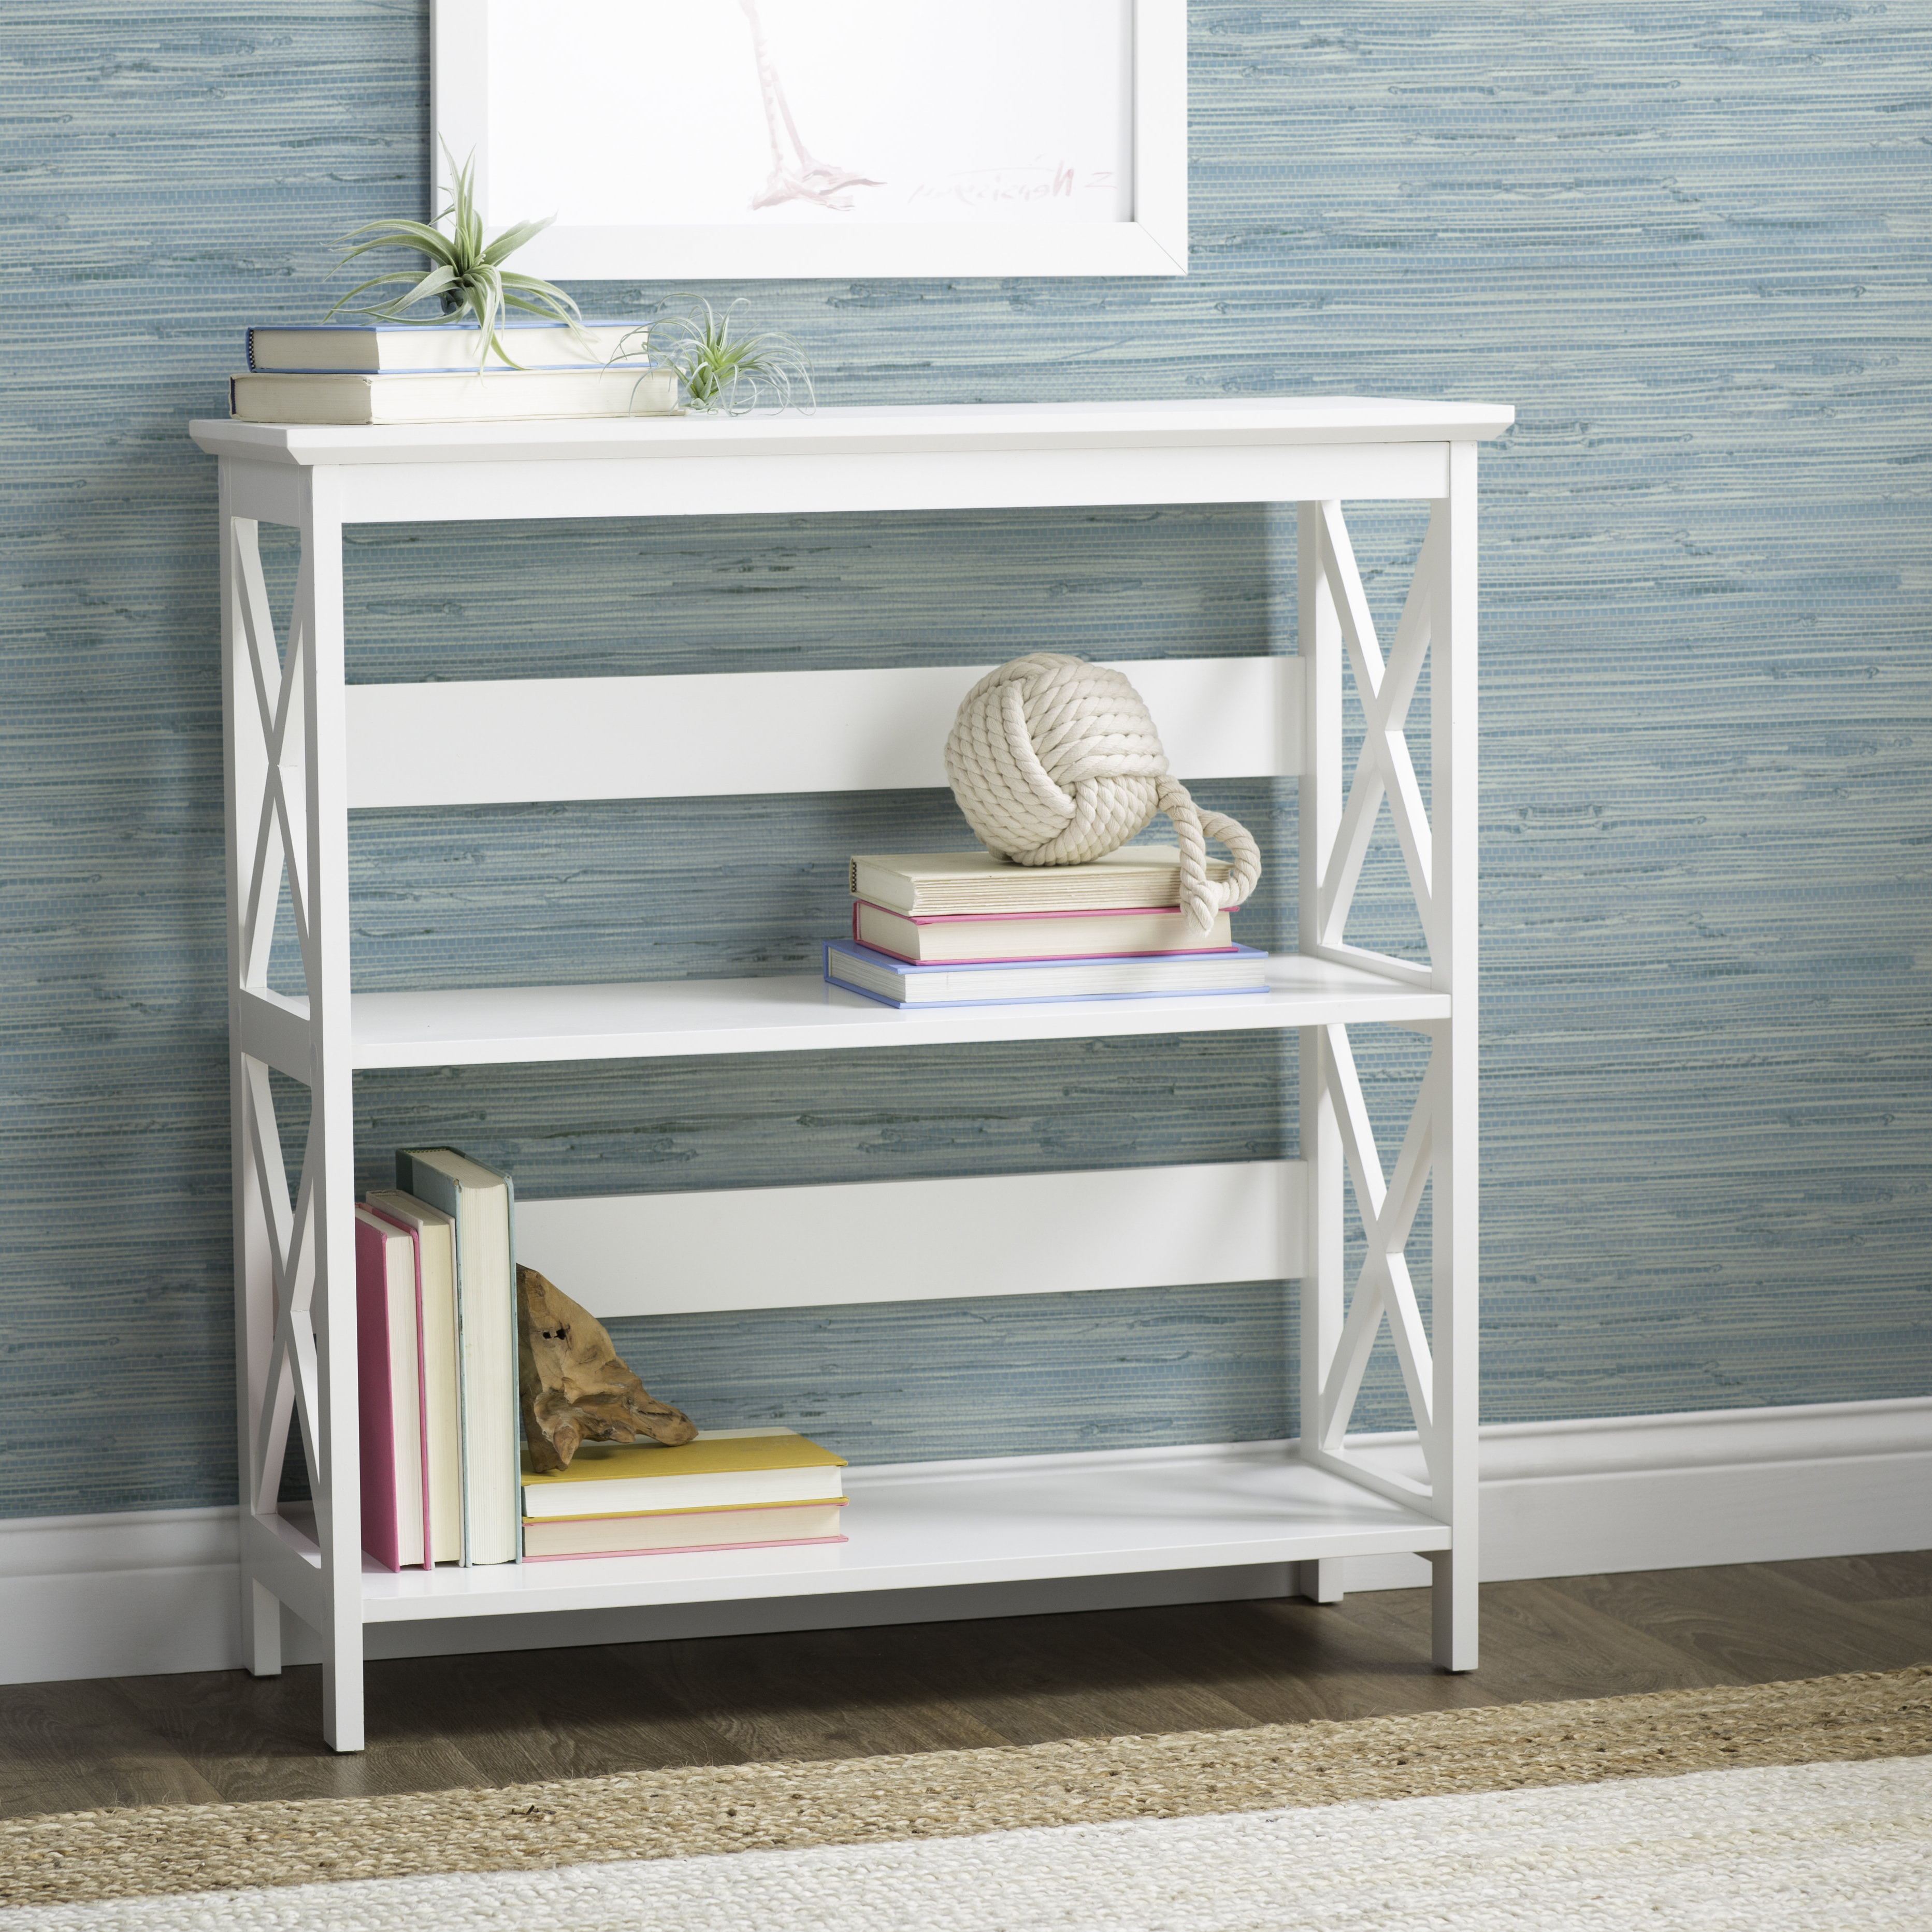 Stoneford Etagere Bookcase For Best And Newest Kettner Etagere Bookcases (View 4 of 20)